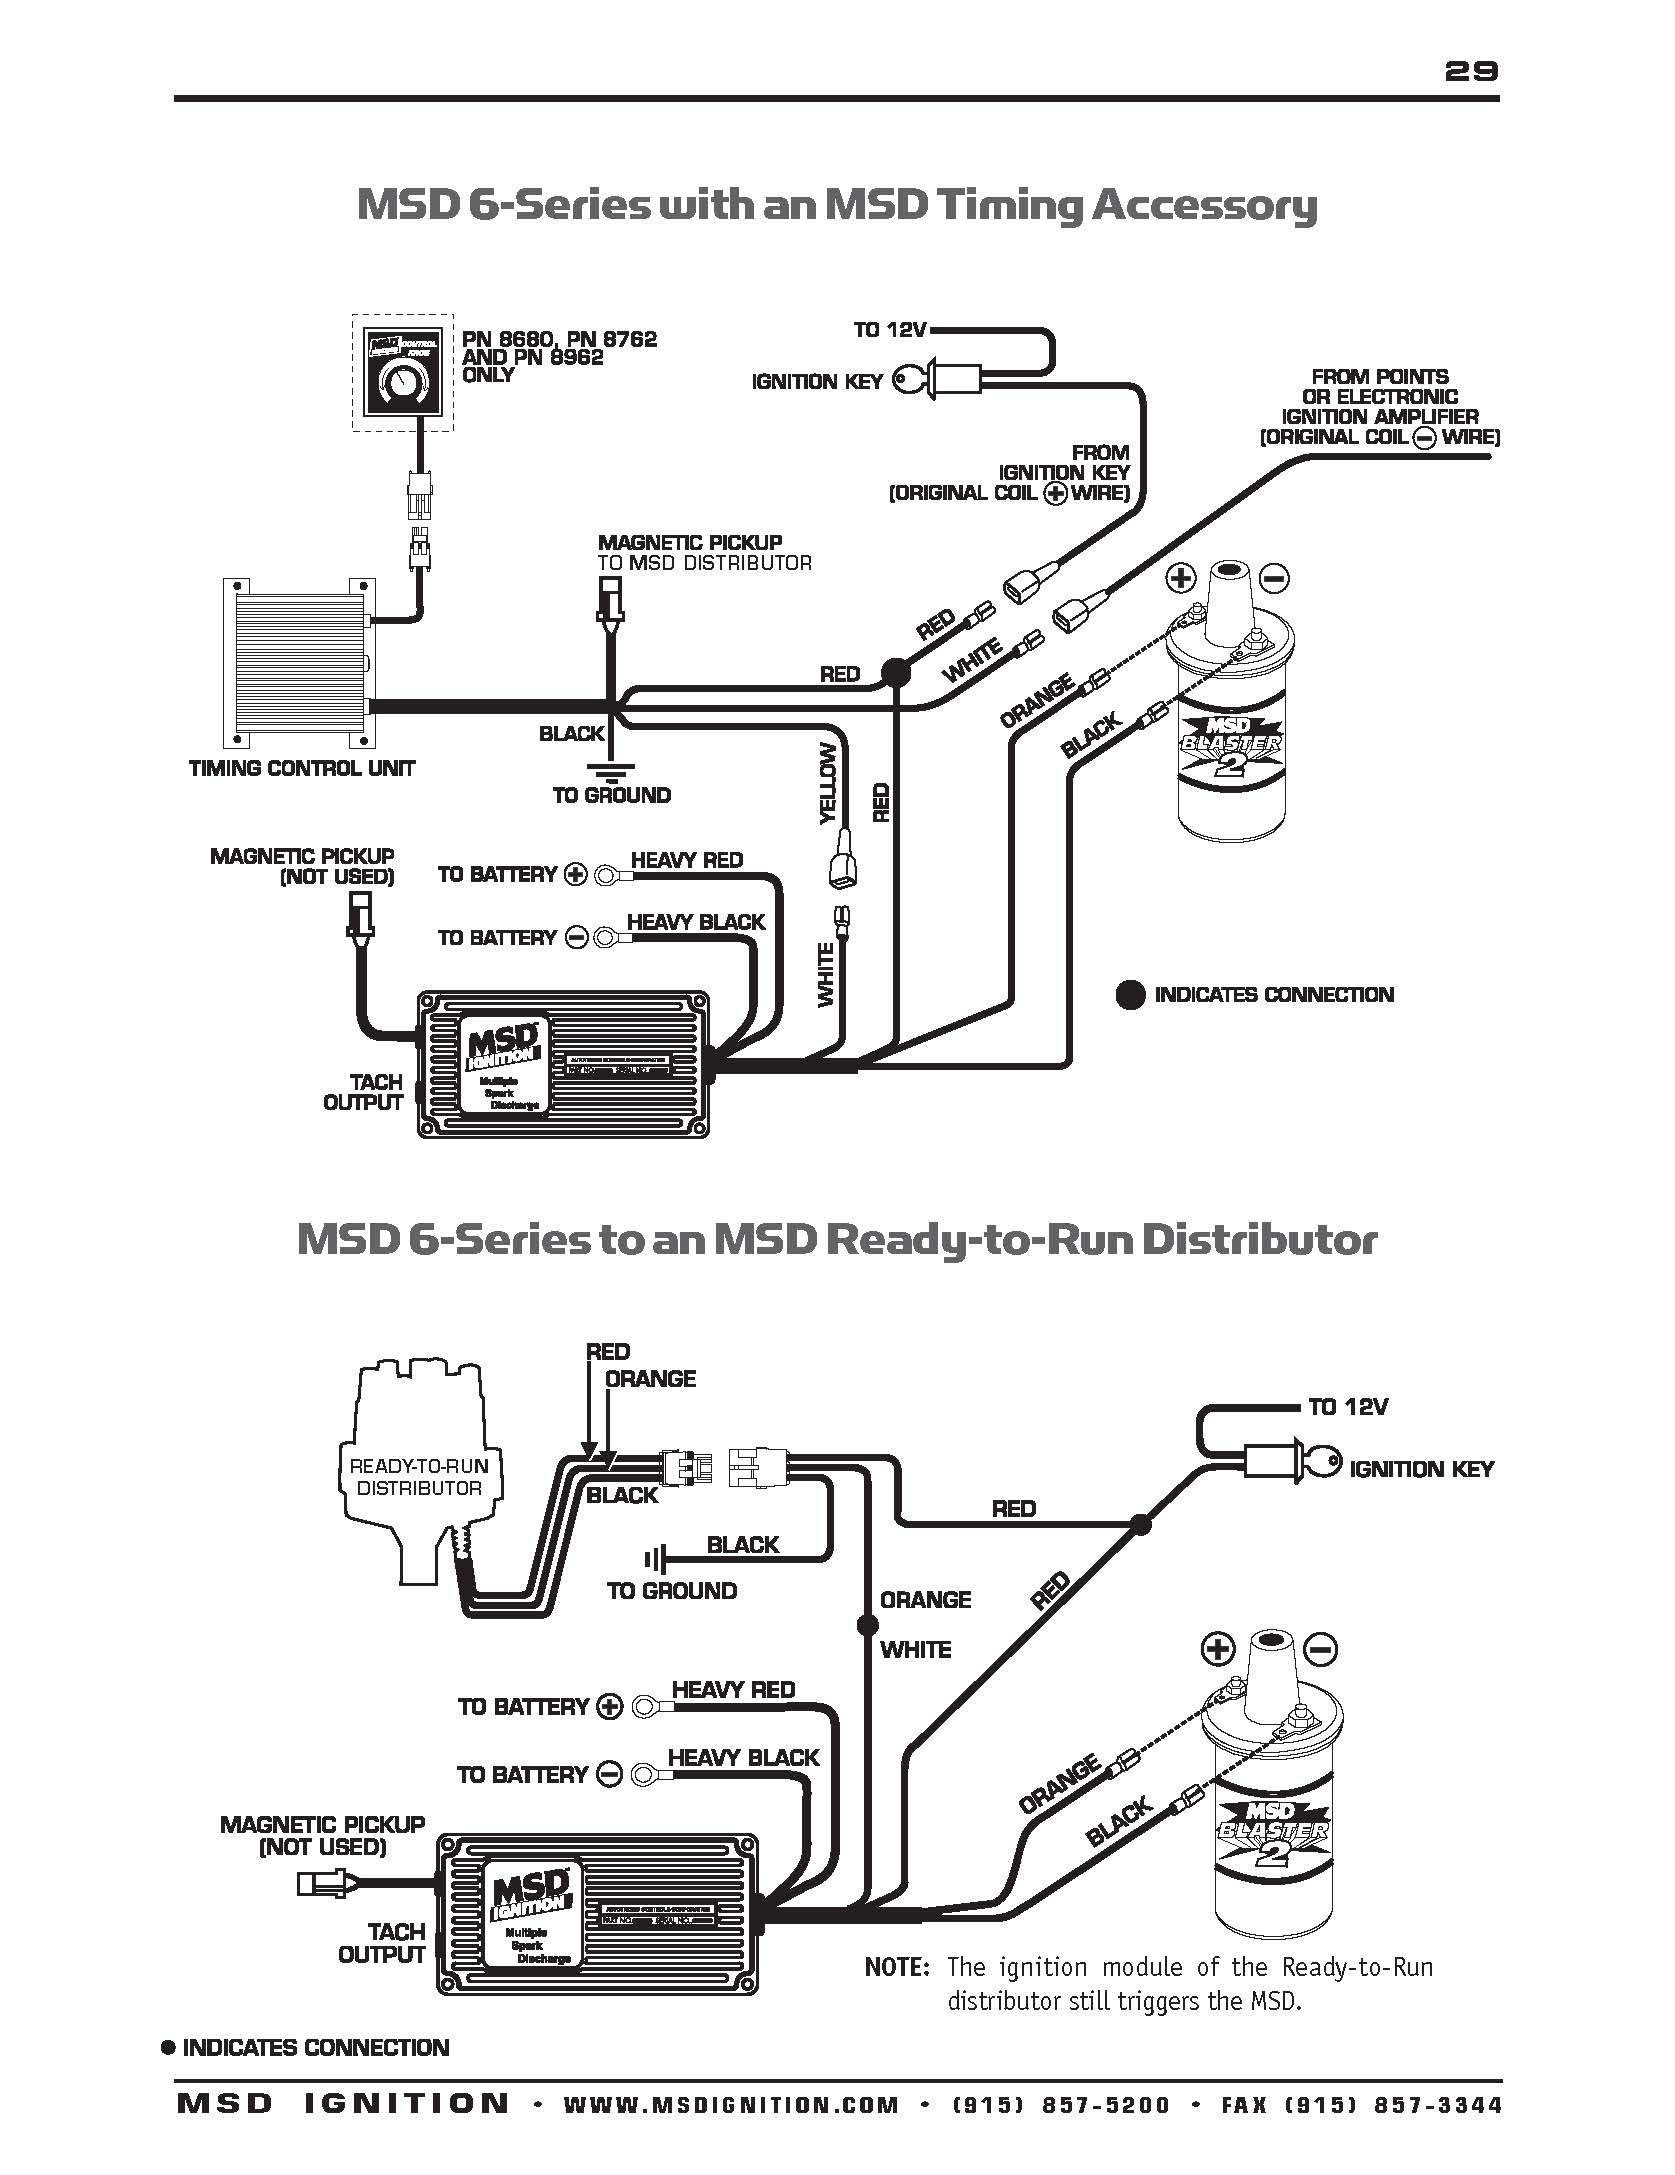 msd 6al 2 wiring diagram Download-Msd 6al 2 Wiring Collection 5-q